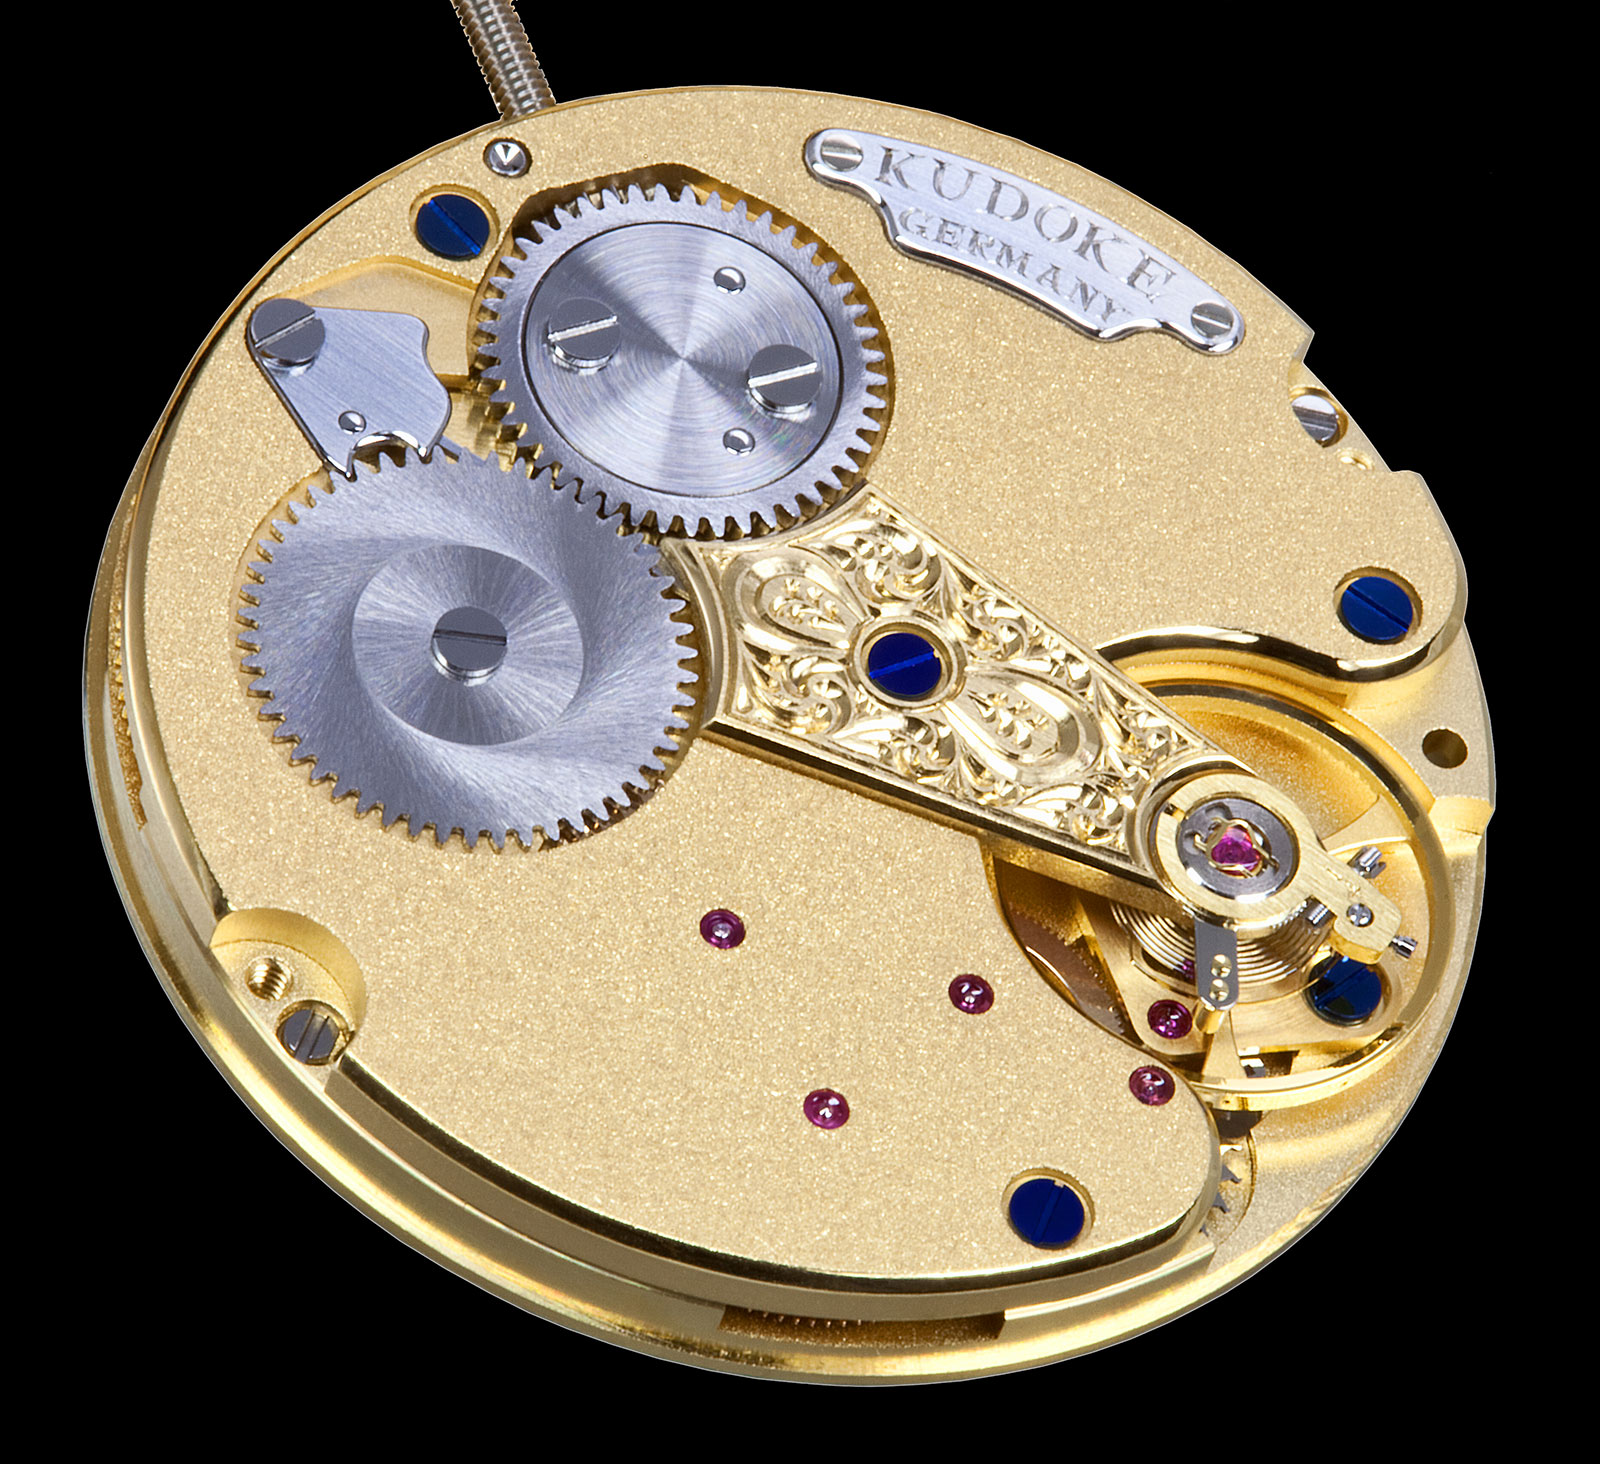 KUDOKE Kaliber 1 watch movement 3